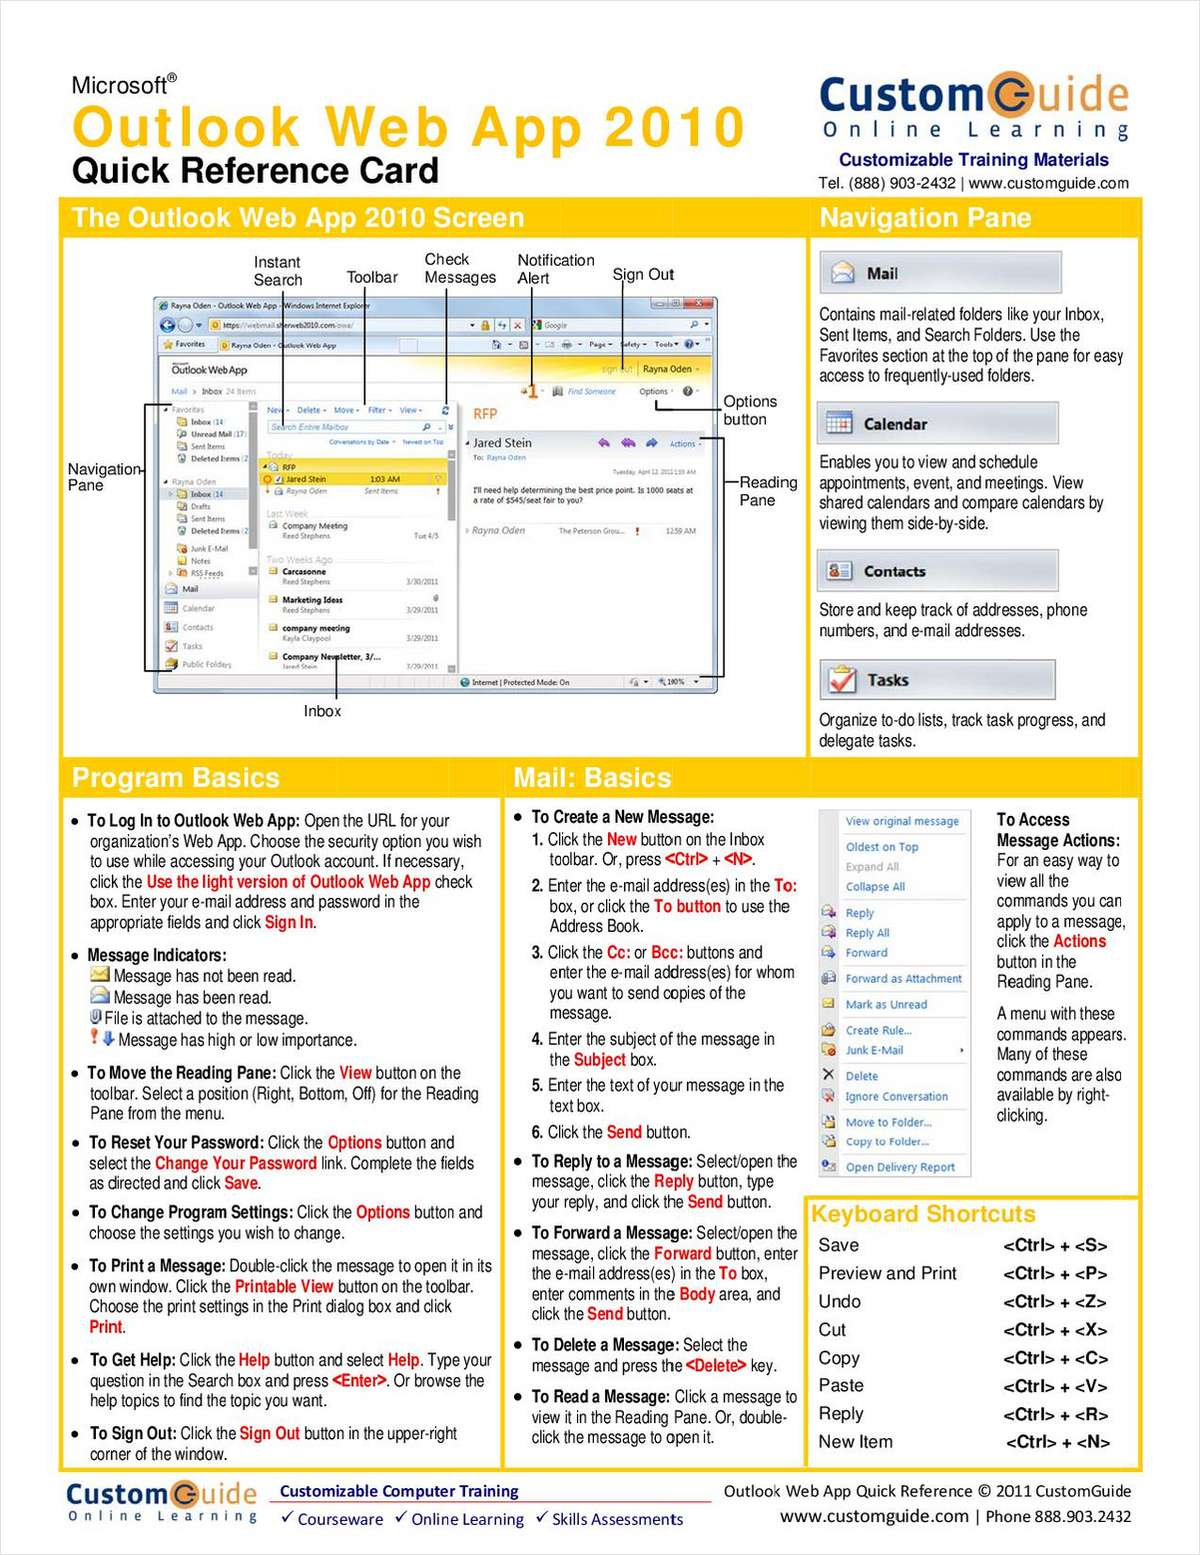 Microsoft Outlook Web App 2010-- Free Quick Reference Card